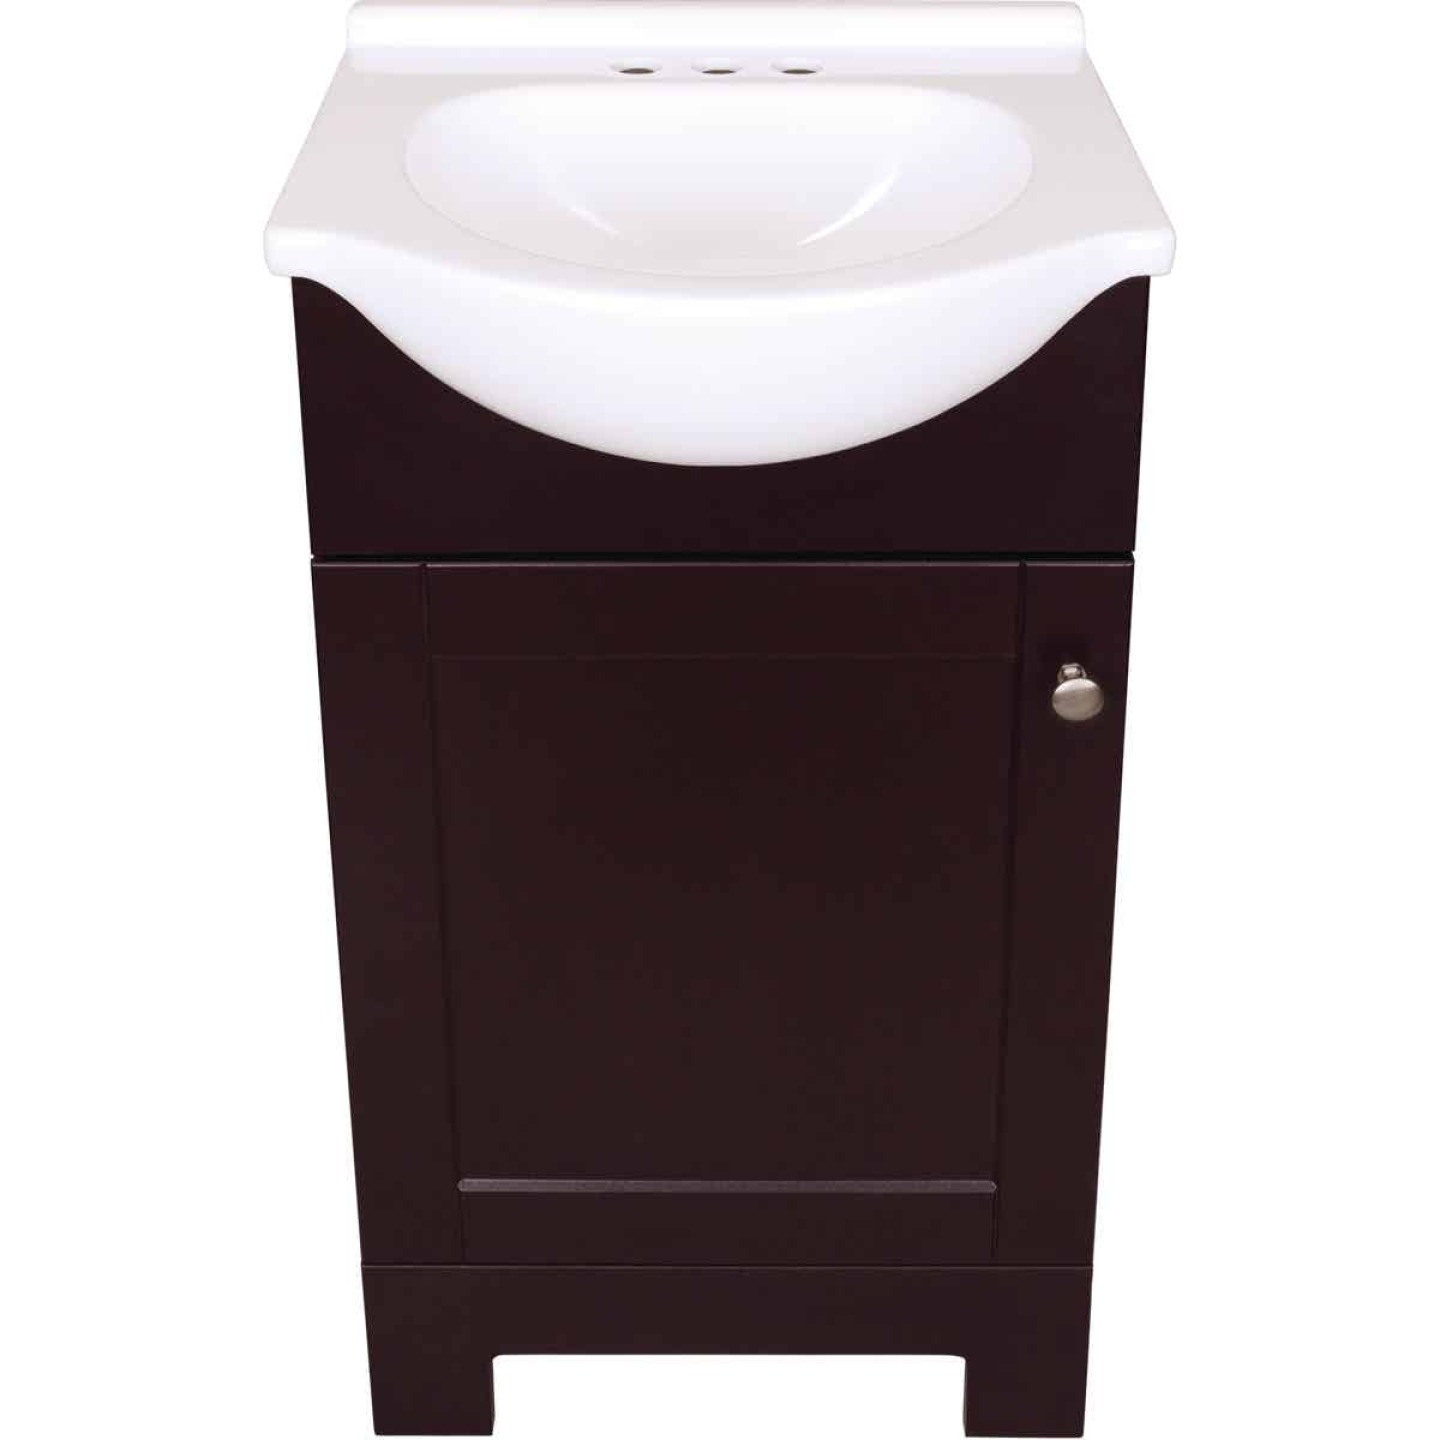 Continental Cabinets European Espresso 18 In. W x 33-1/2 In. H x 12-1/2 In. D Vanity with Cultured Marble Top Image 2